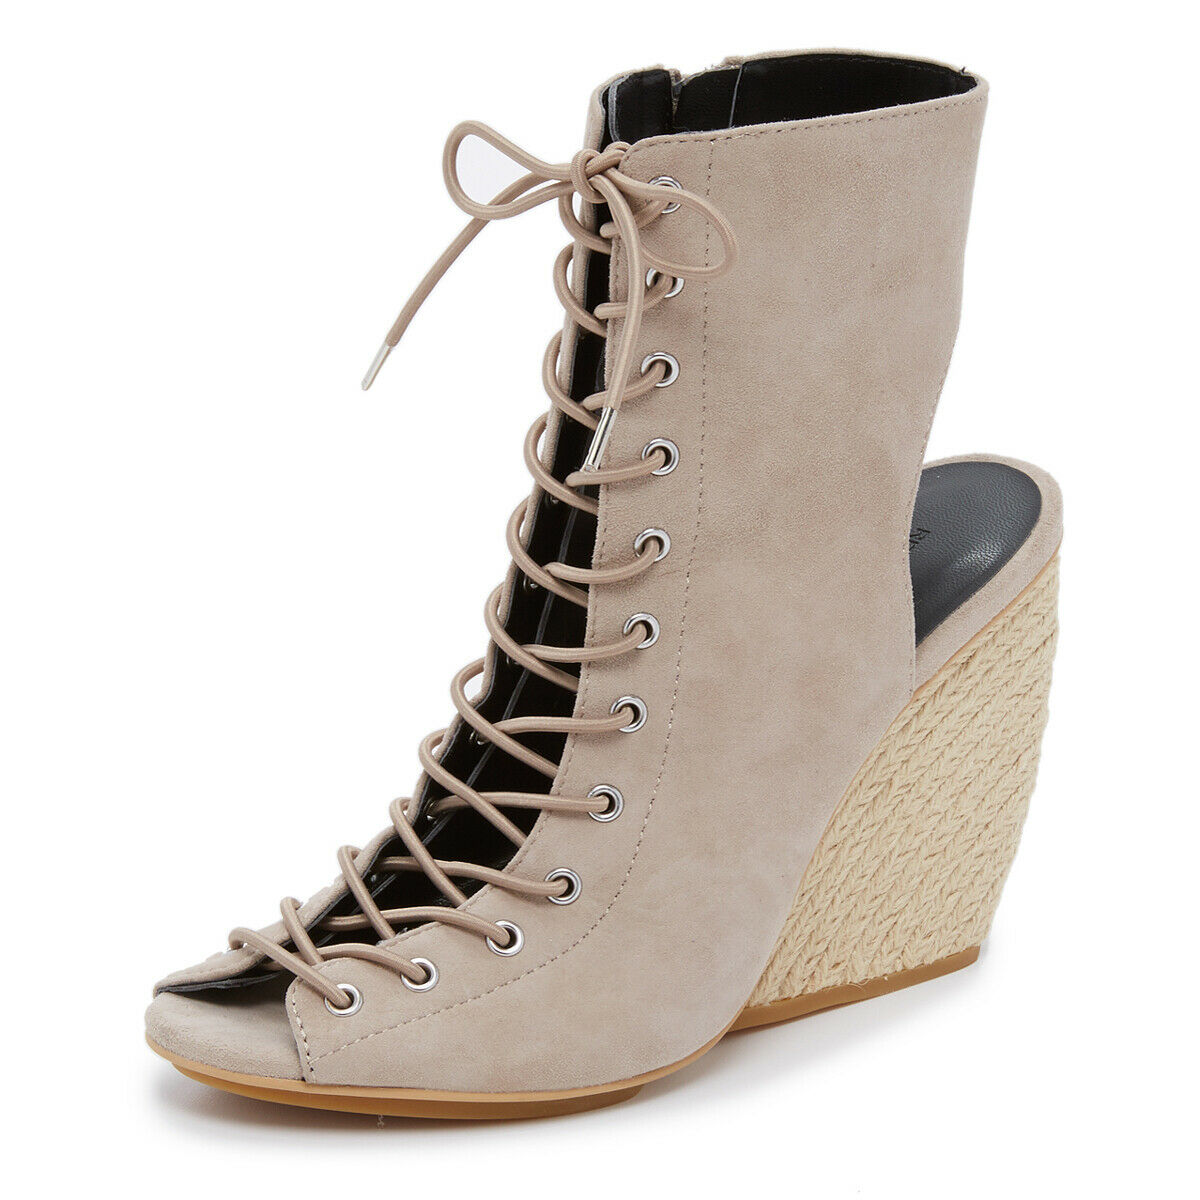 REBECCA MINKOFF Donne Elle Sand Suede Lace  -Up Wedges  195 NIB  vendita all'ingrosso